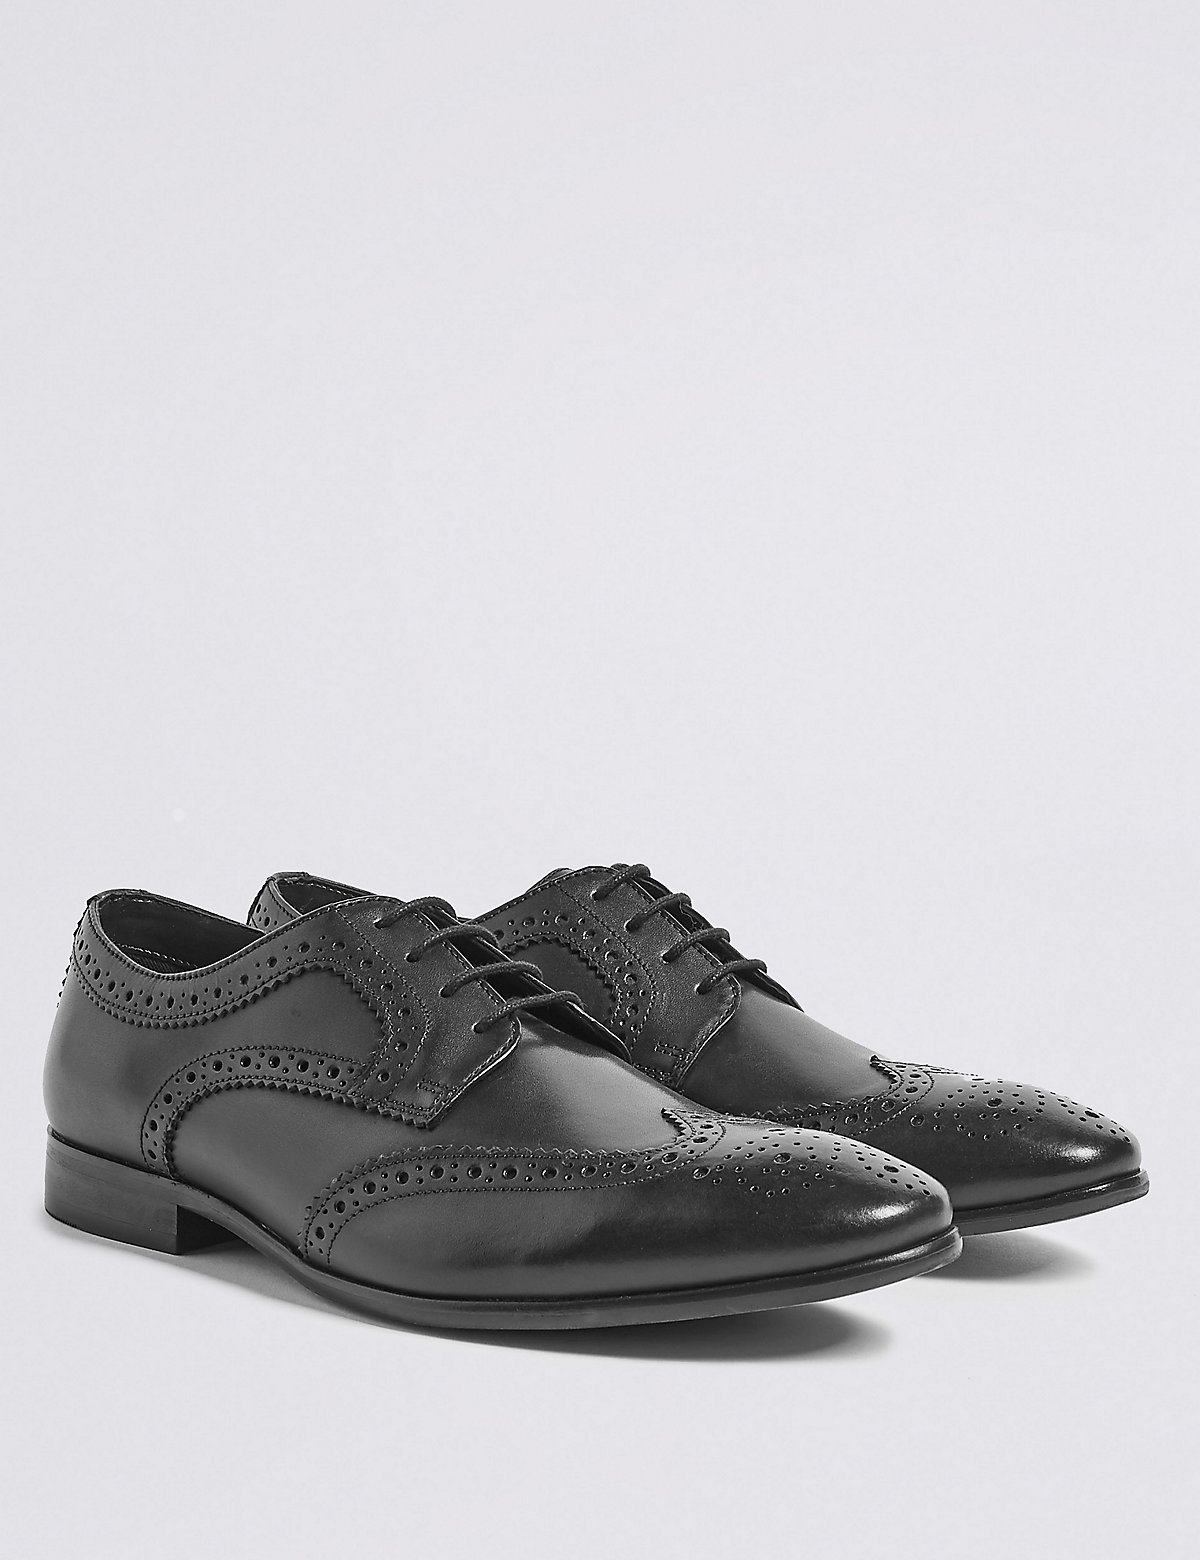 Marks & Spencer Black Leather Almond Toe Brogue Shoes